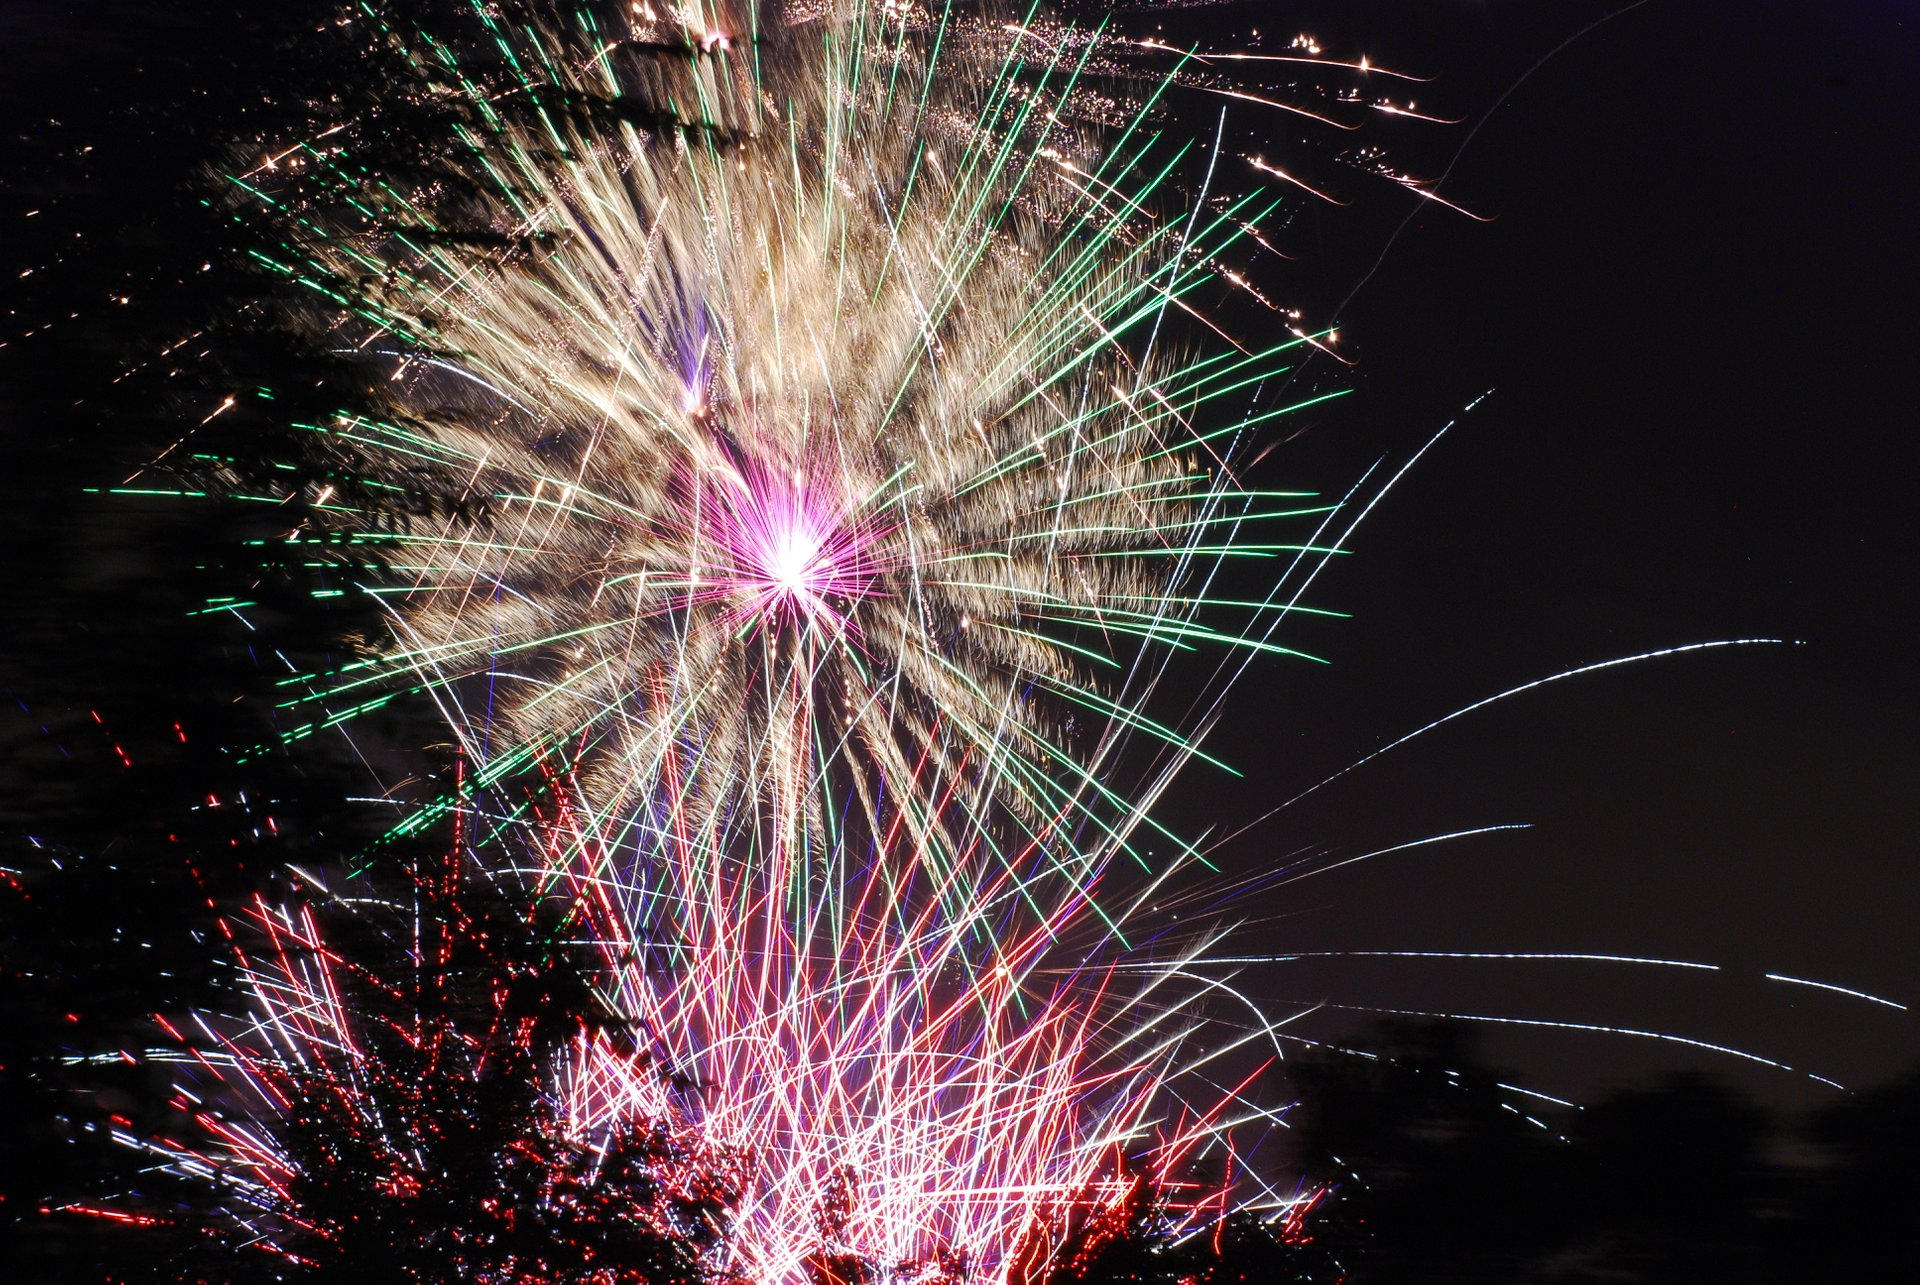 Fireworks at the Sugarhouse Park in Salt Lake City 2019